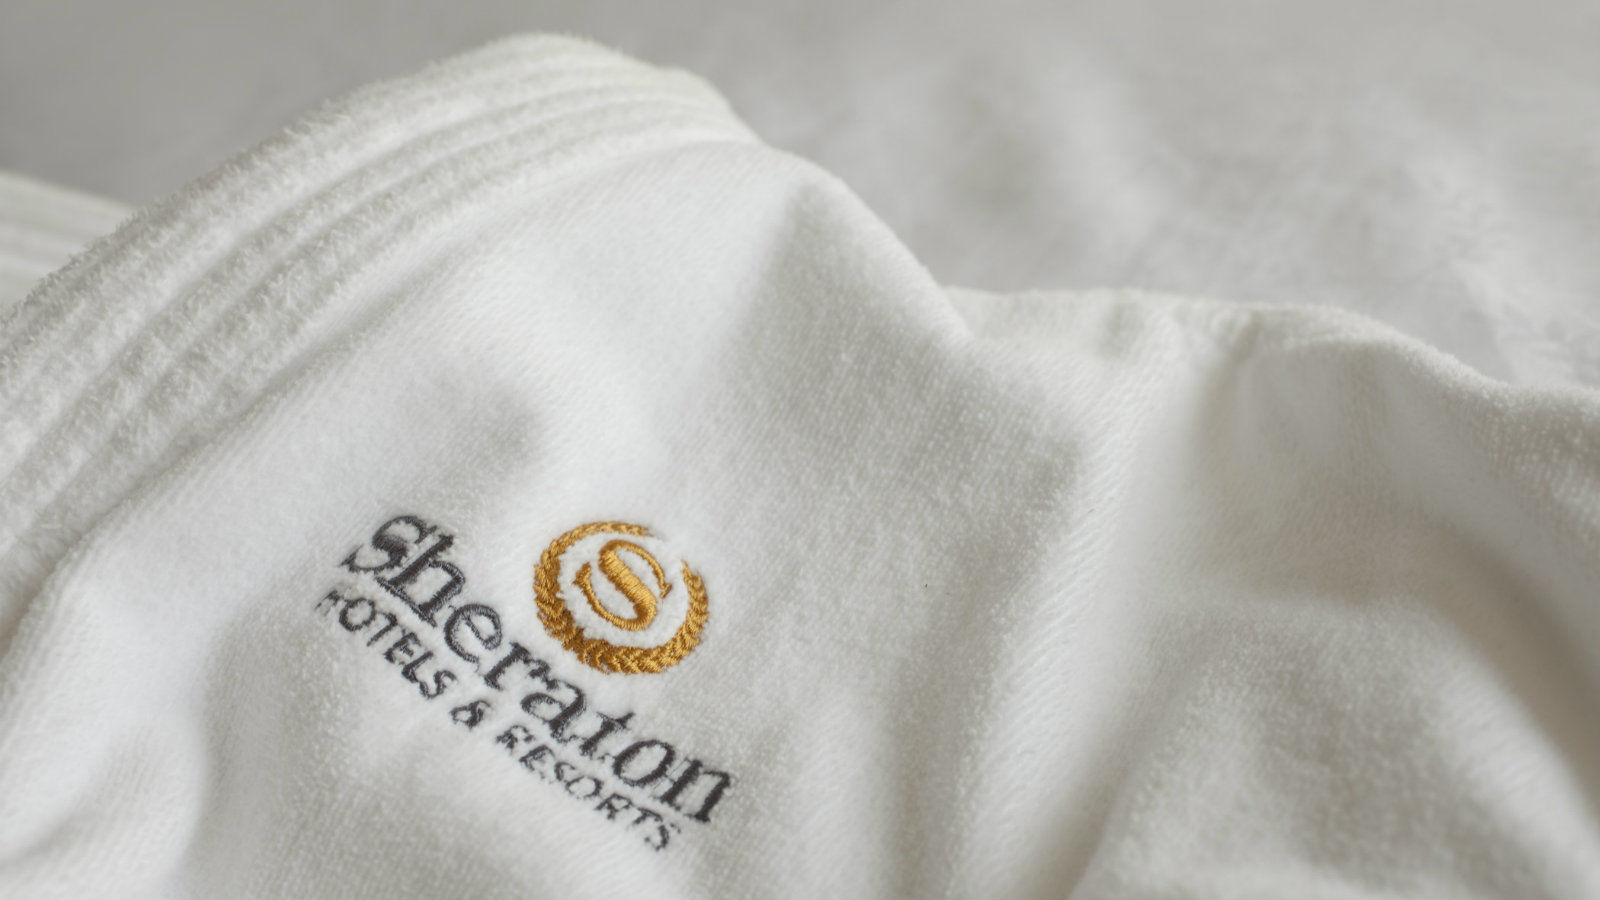 Sheraton Atlantic City Hotel Guest Room Amenities | Robe